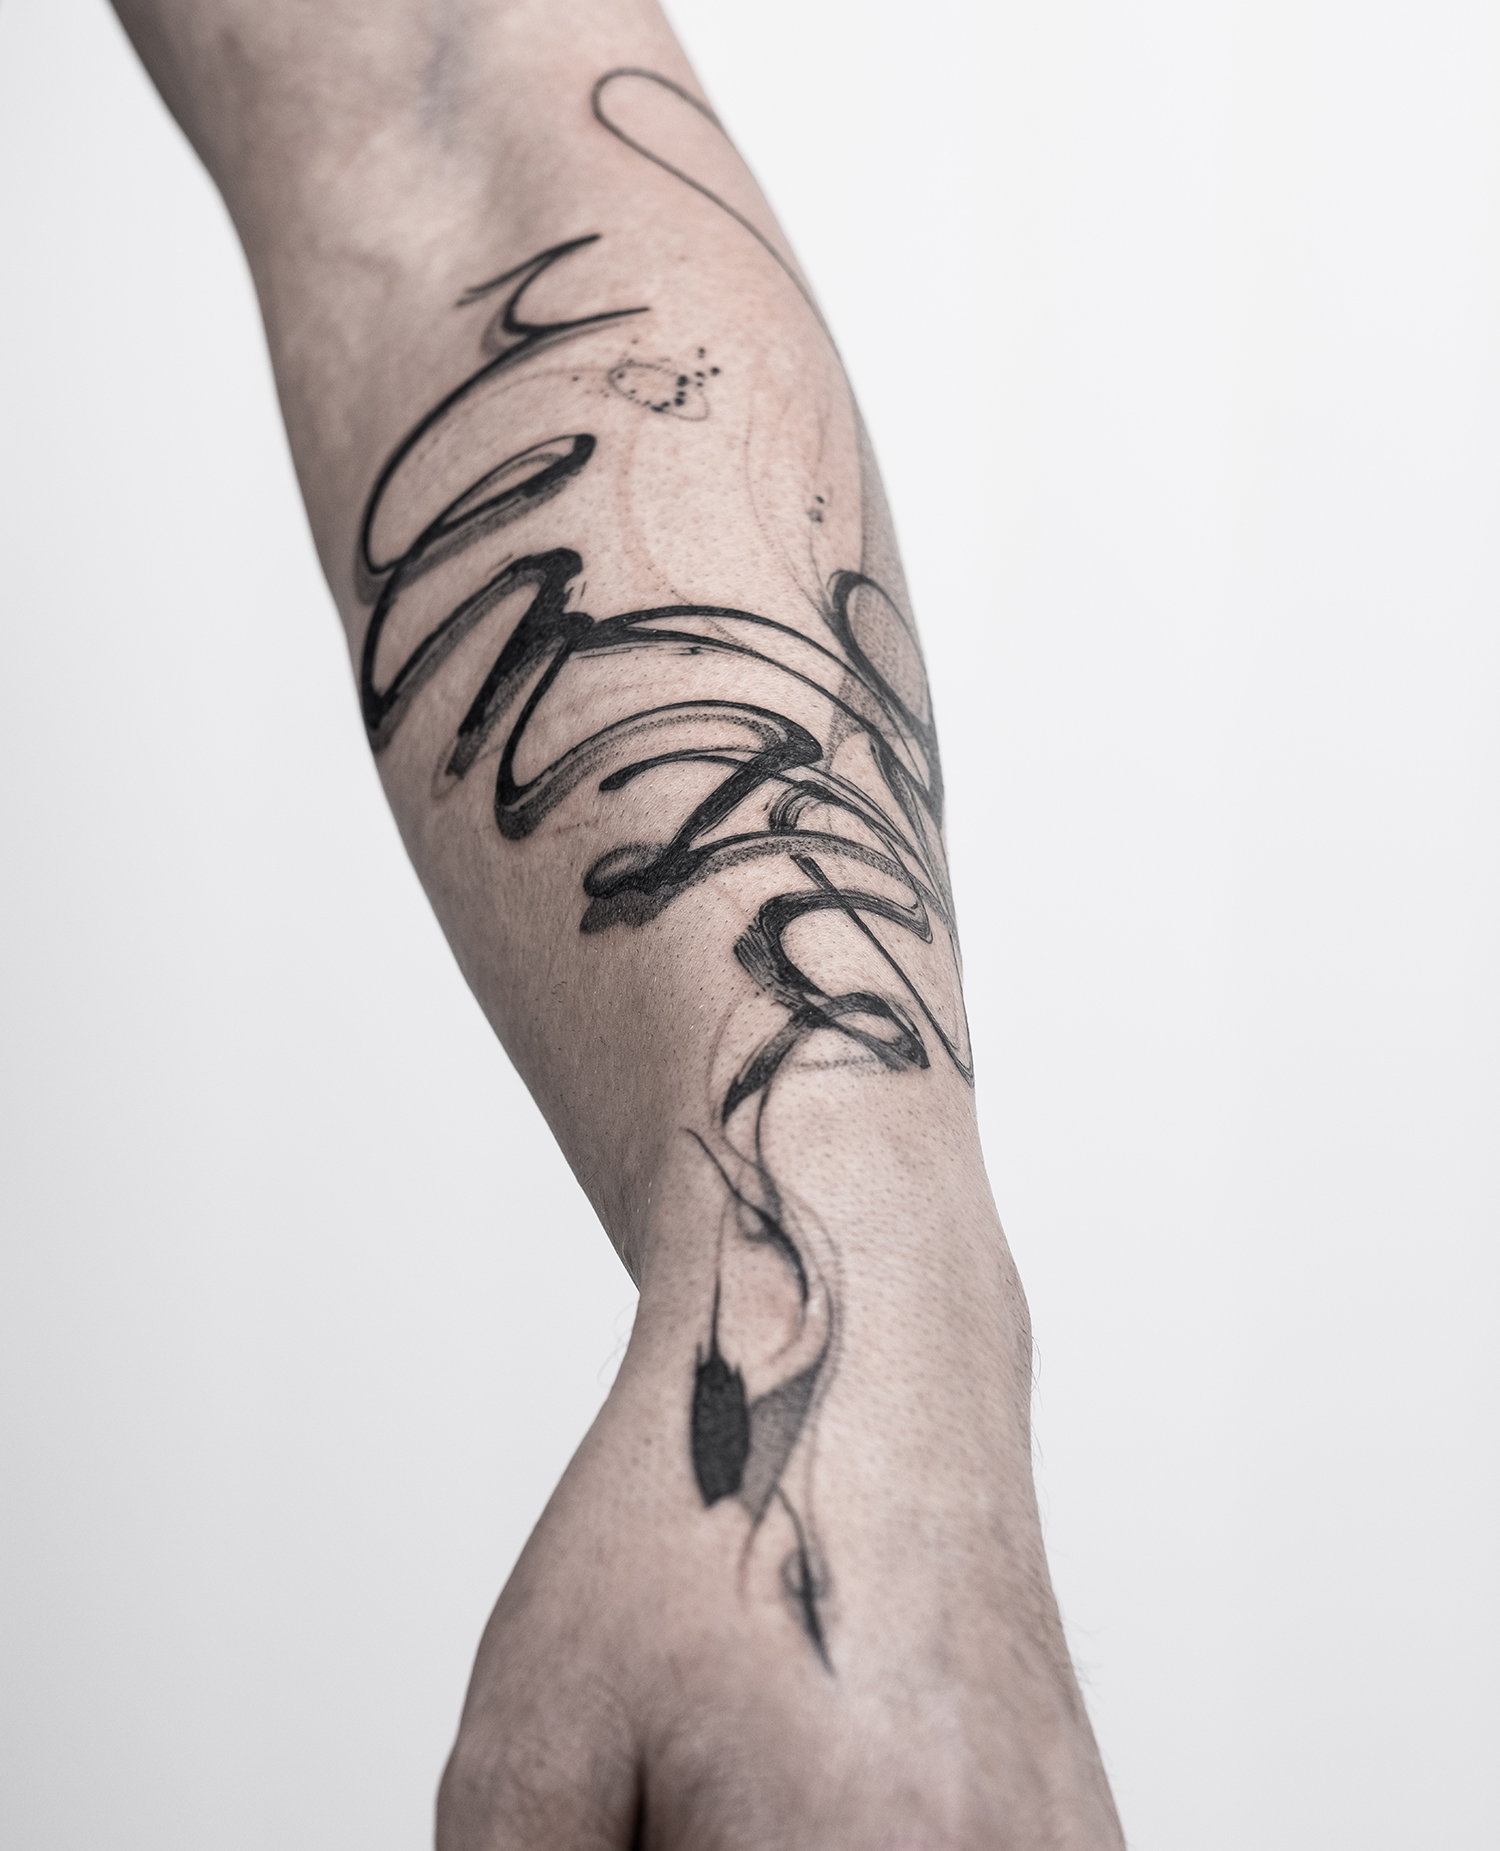 arm and hand tattoo, wavy lines, blackwork